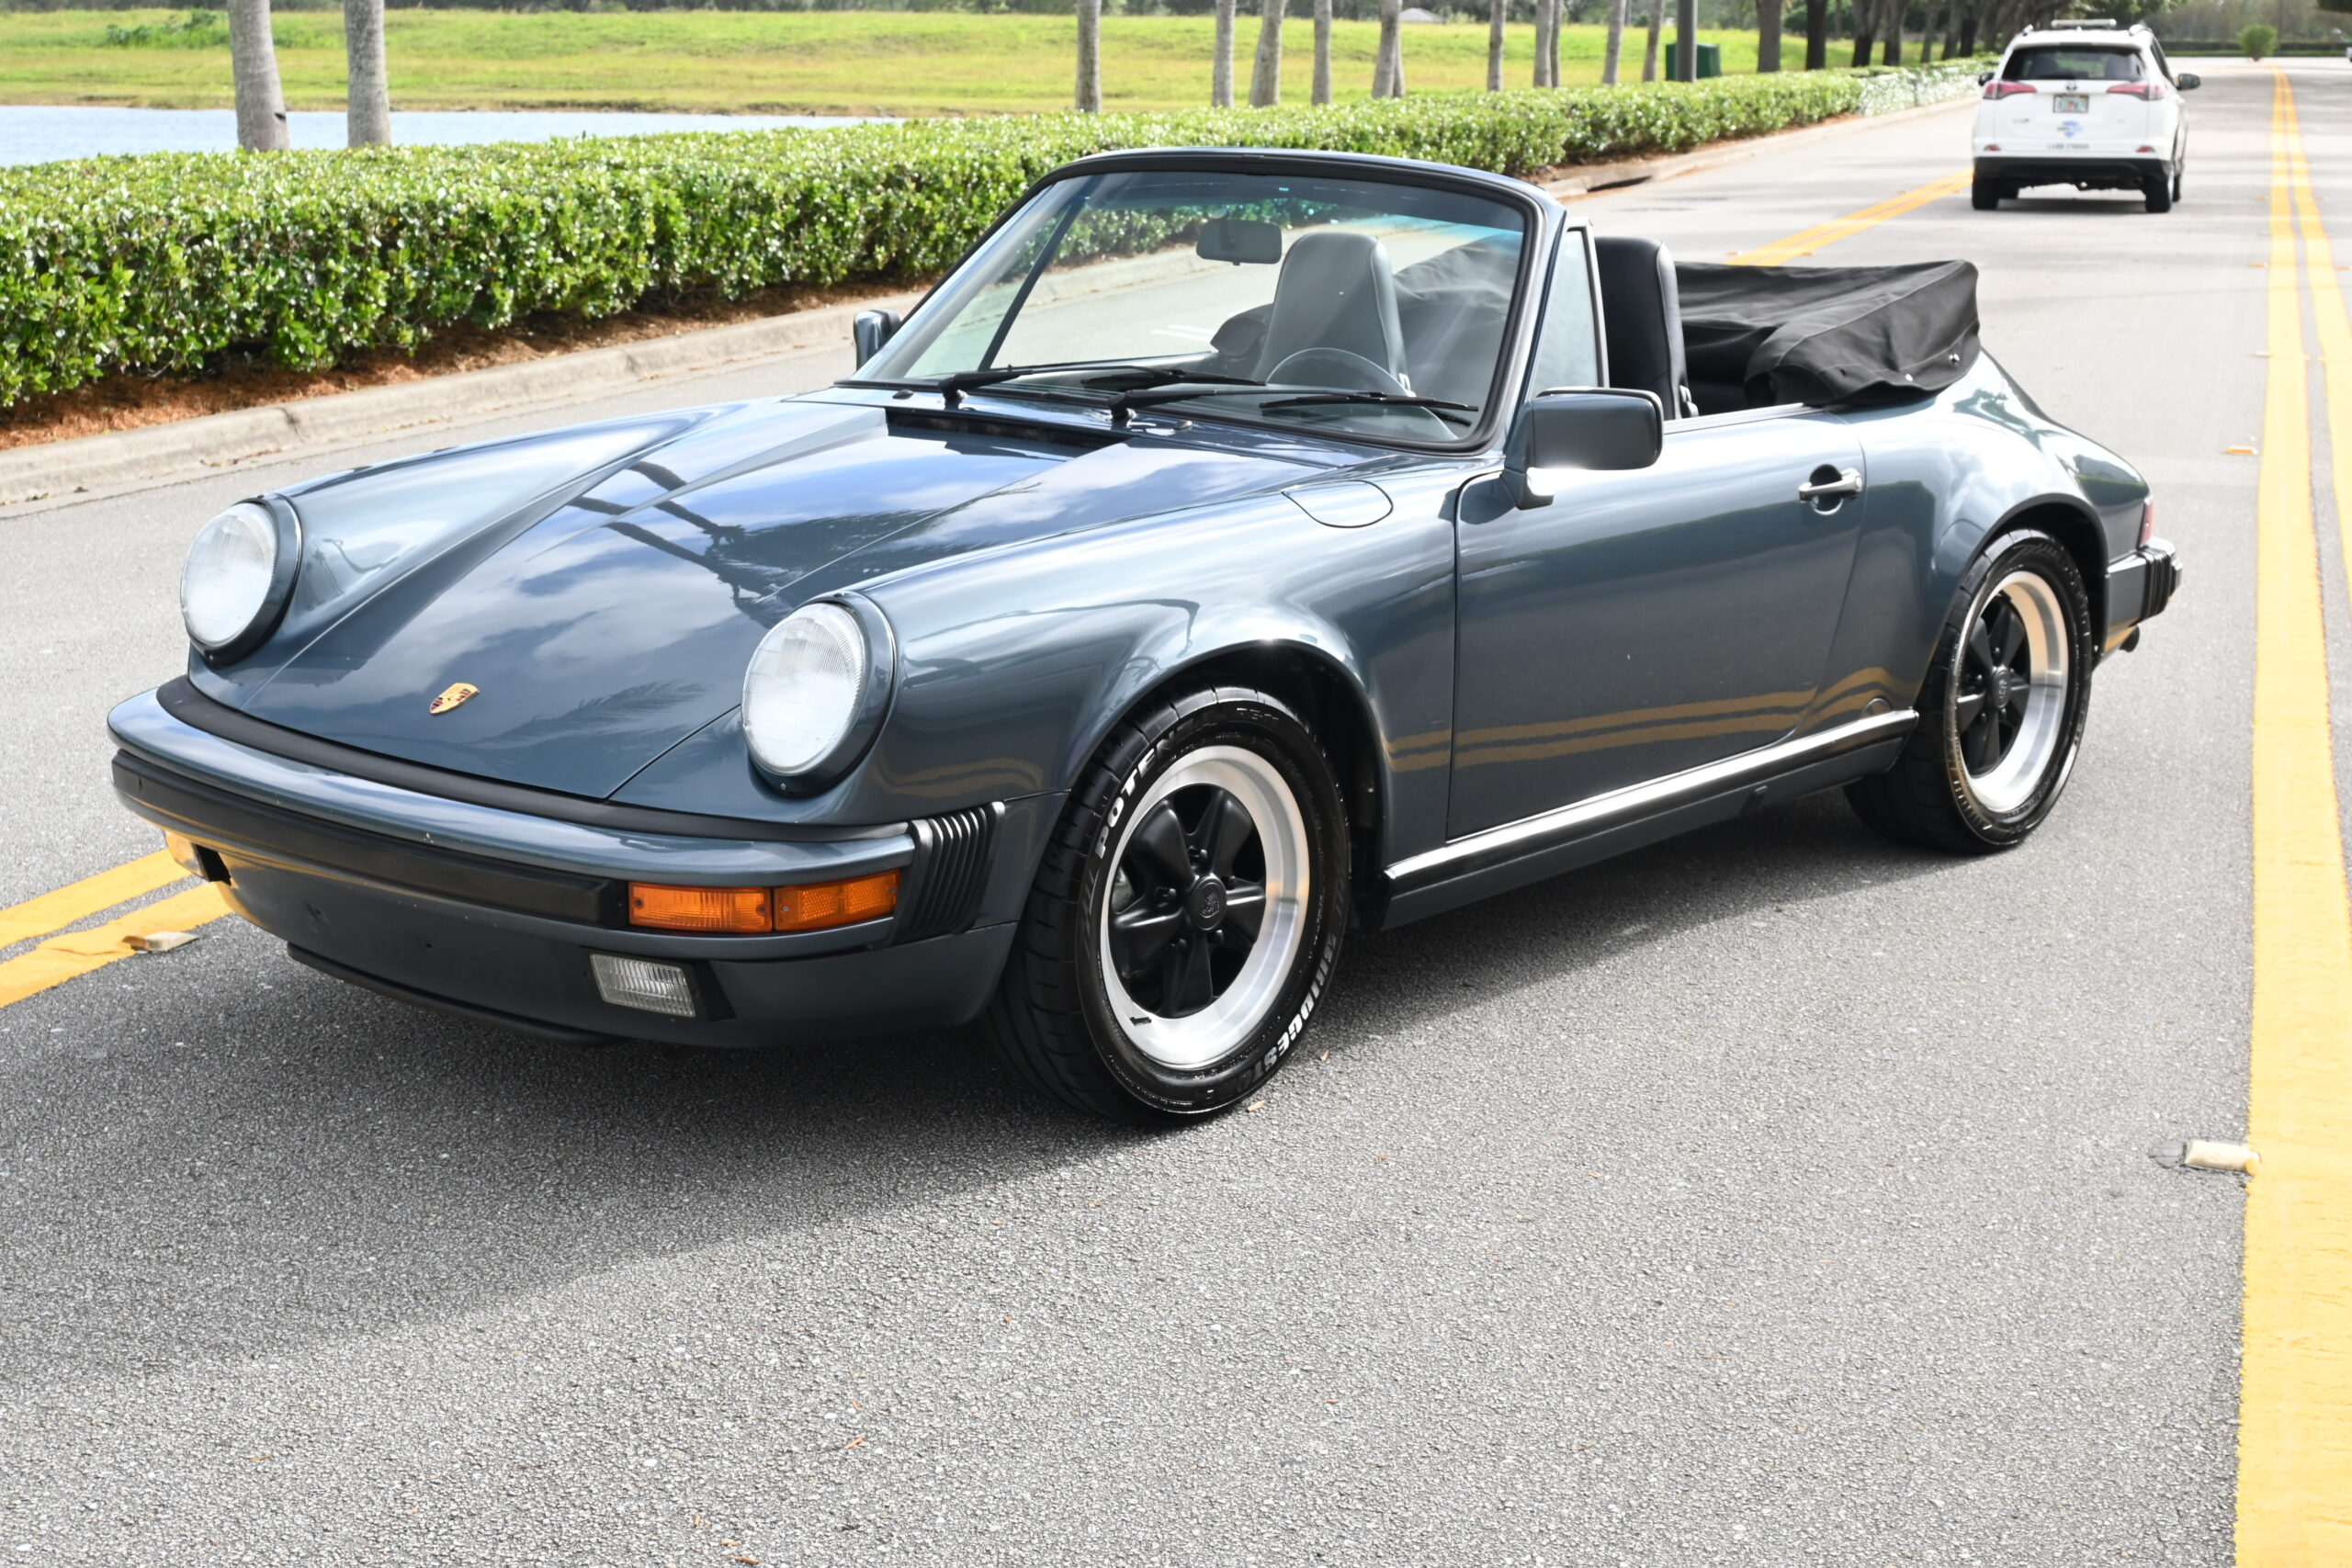 1987 Porsche 911 Carrera, G50 transmission!, documented miles with service records and service manual, outstanding condition, books, tools